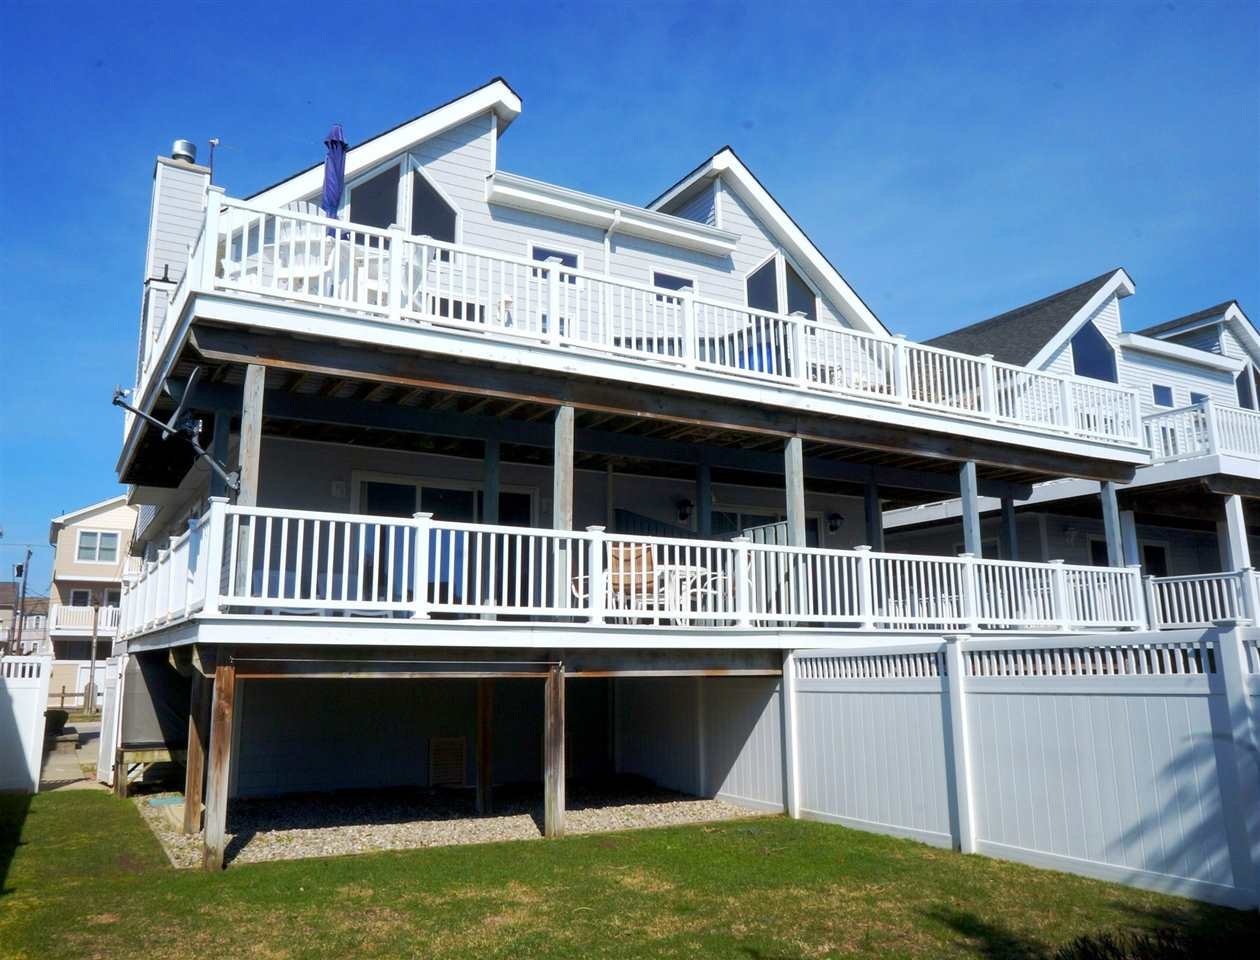 3010 S Marine Pl, Sea Isle City, NJ 08243